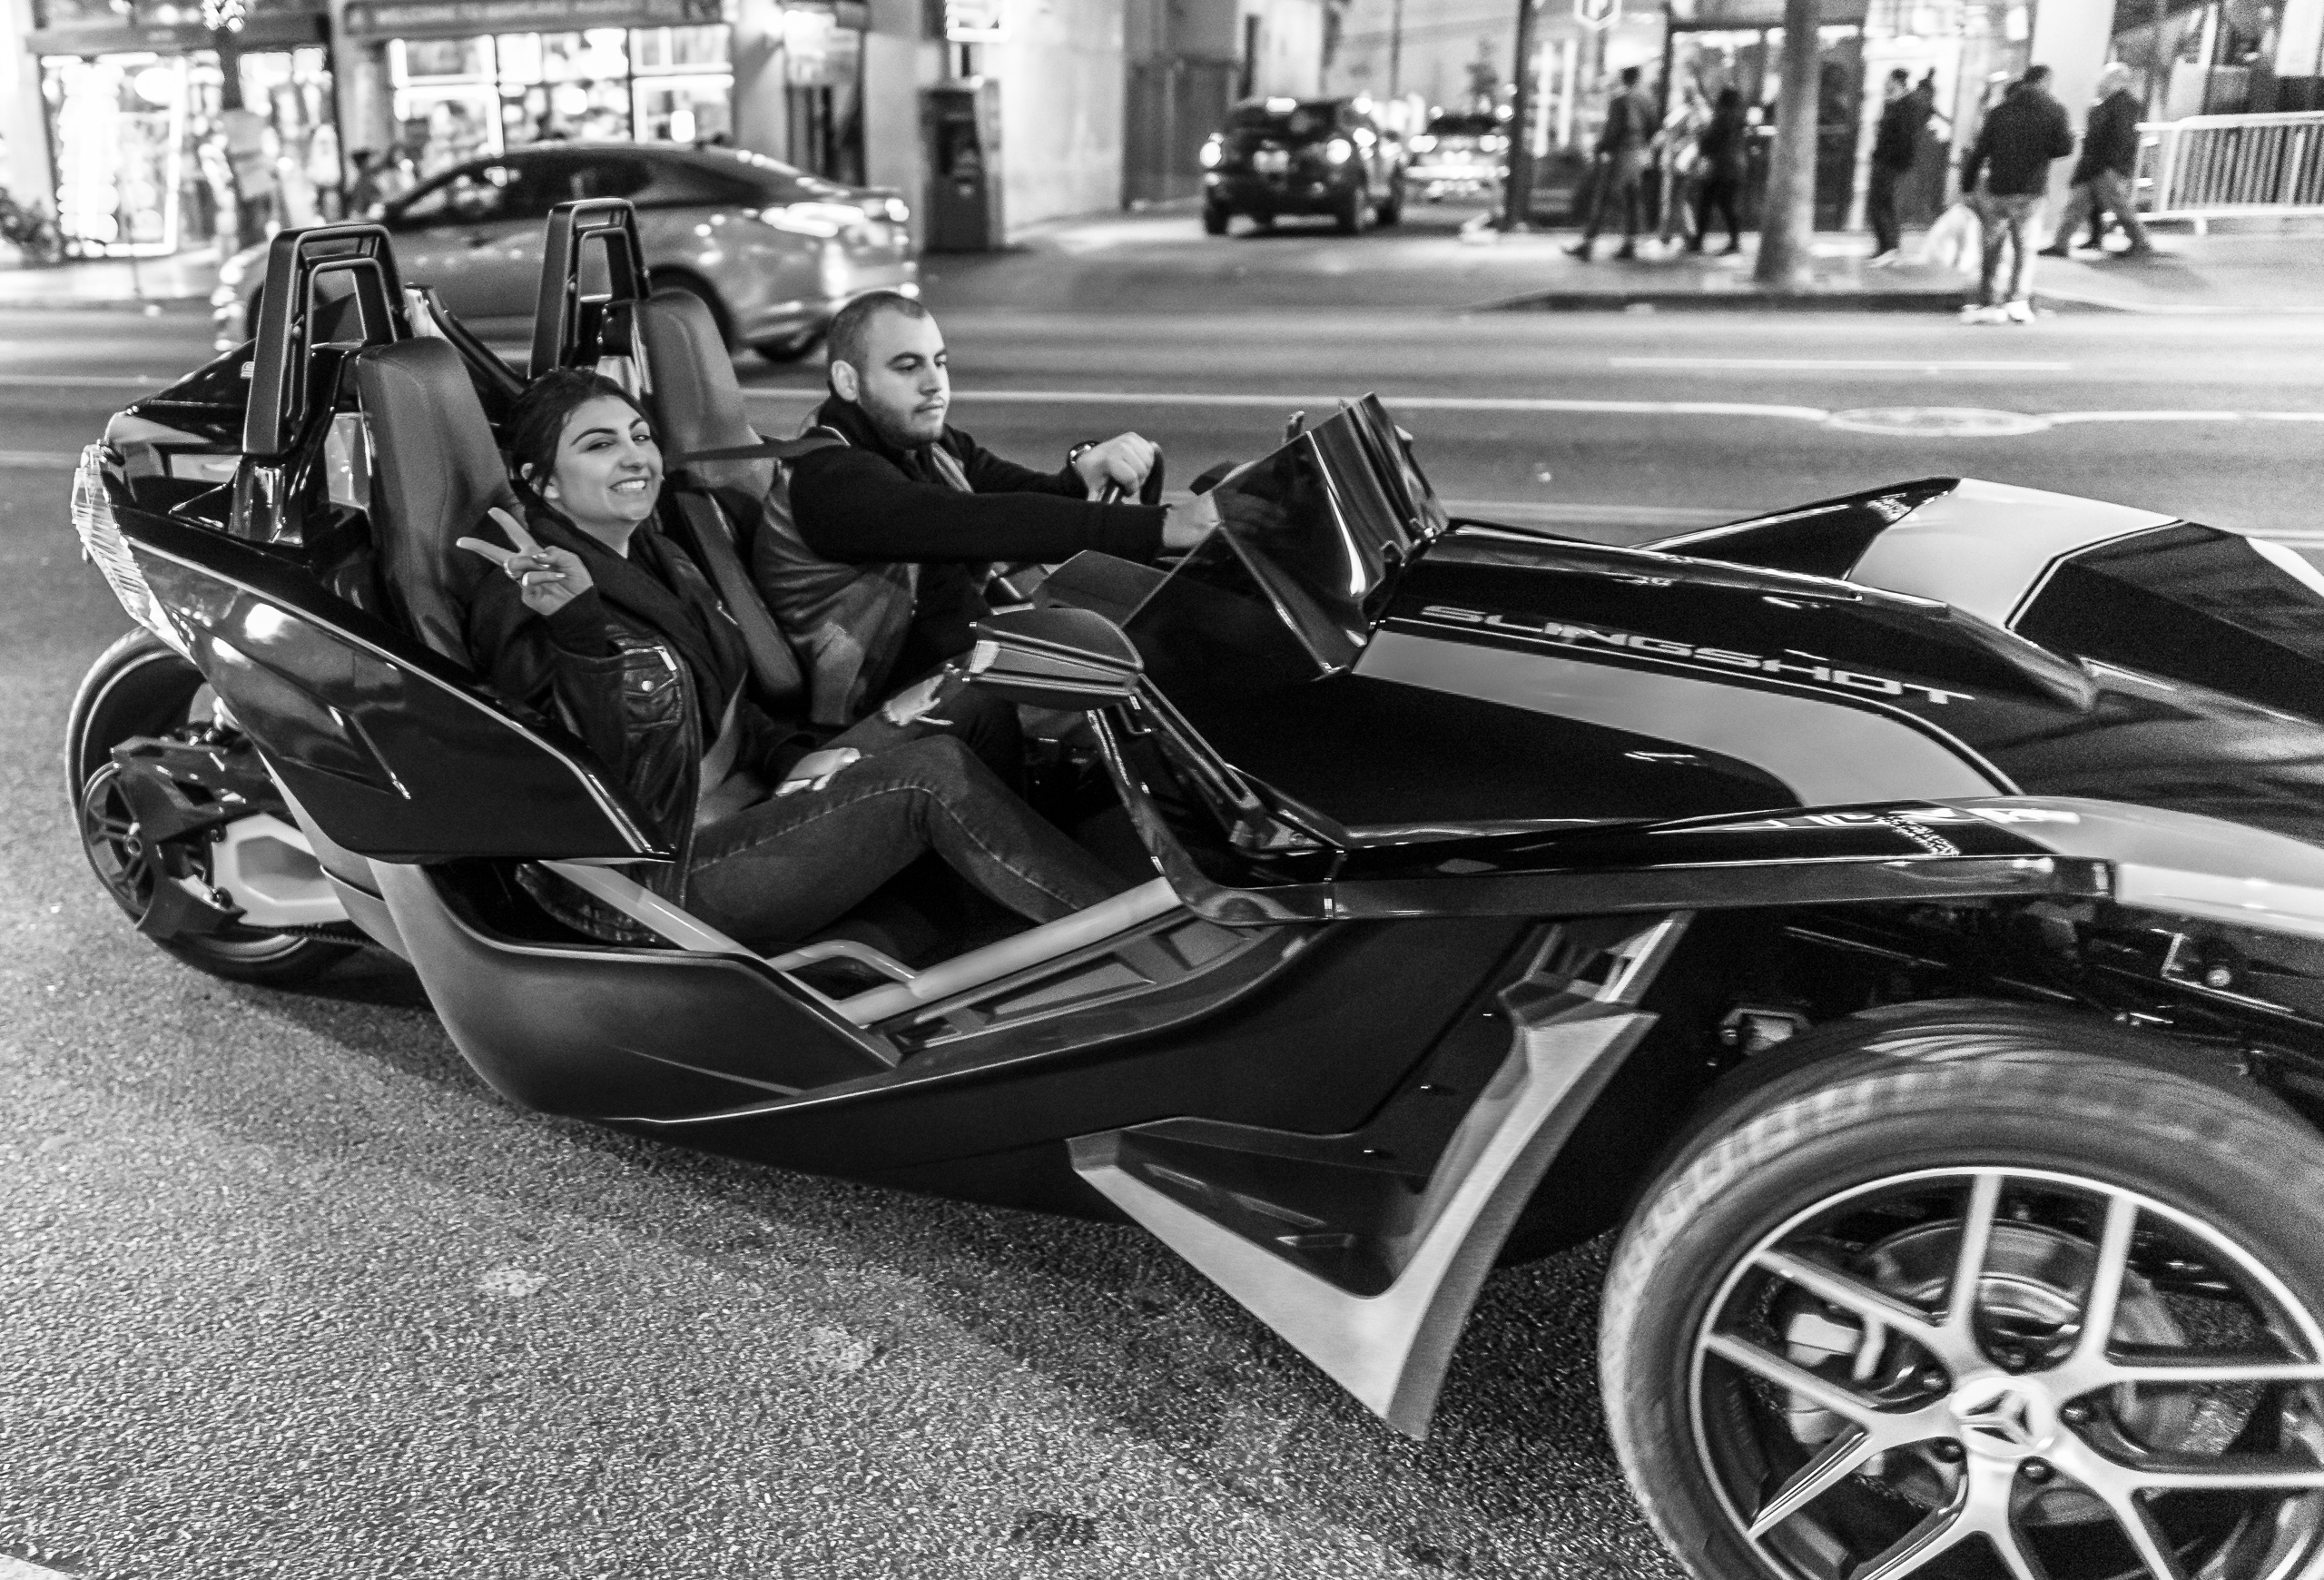 a man drives a Polaris Slingshot down Hollwyood Blvd on a Saturday night. In the passenger seat a woman smiles at my camera and makes a peace sign